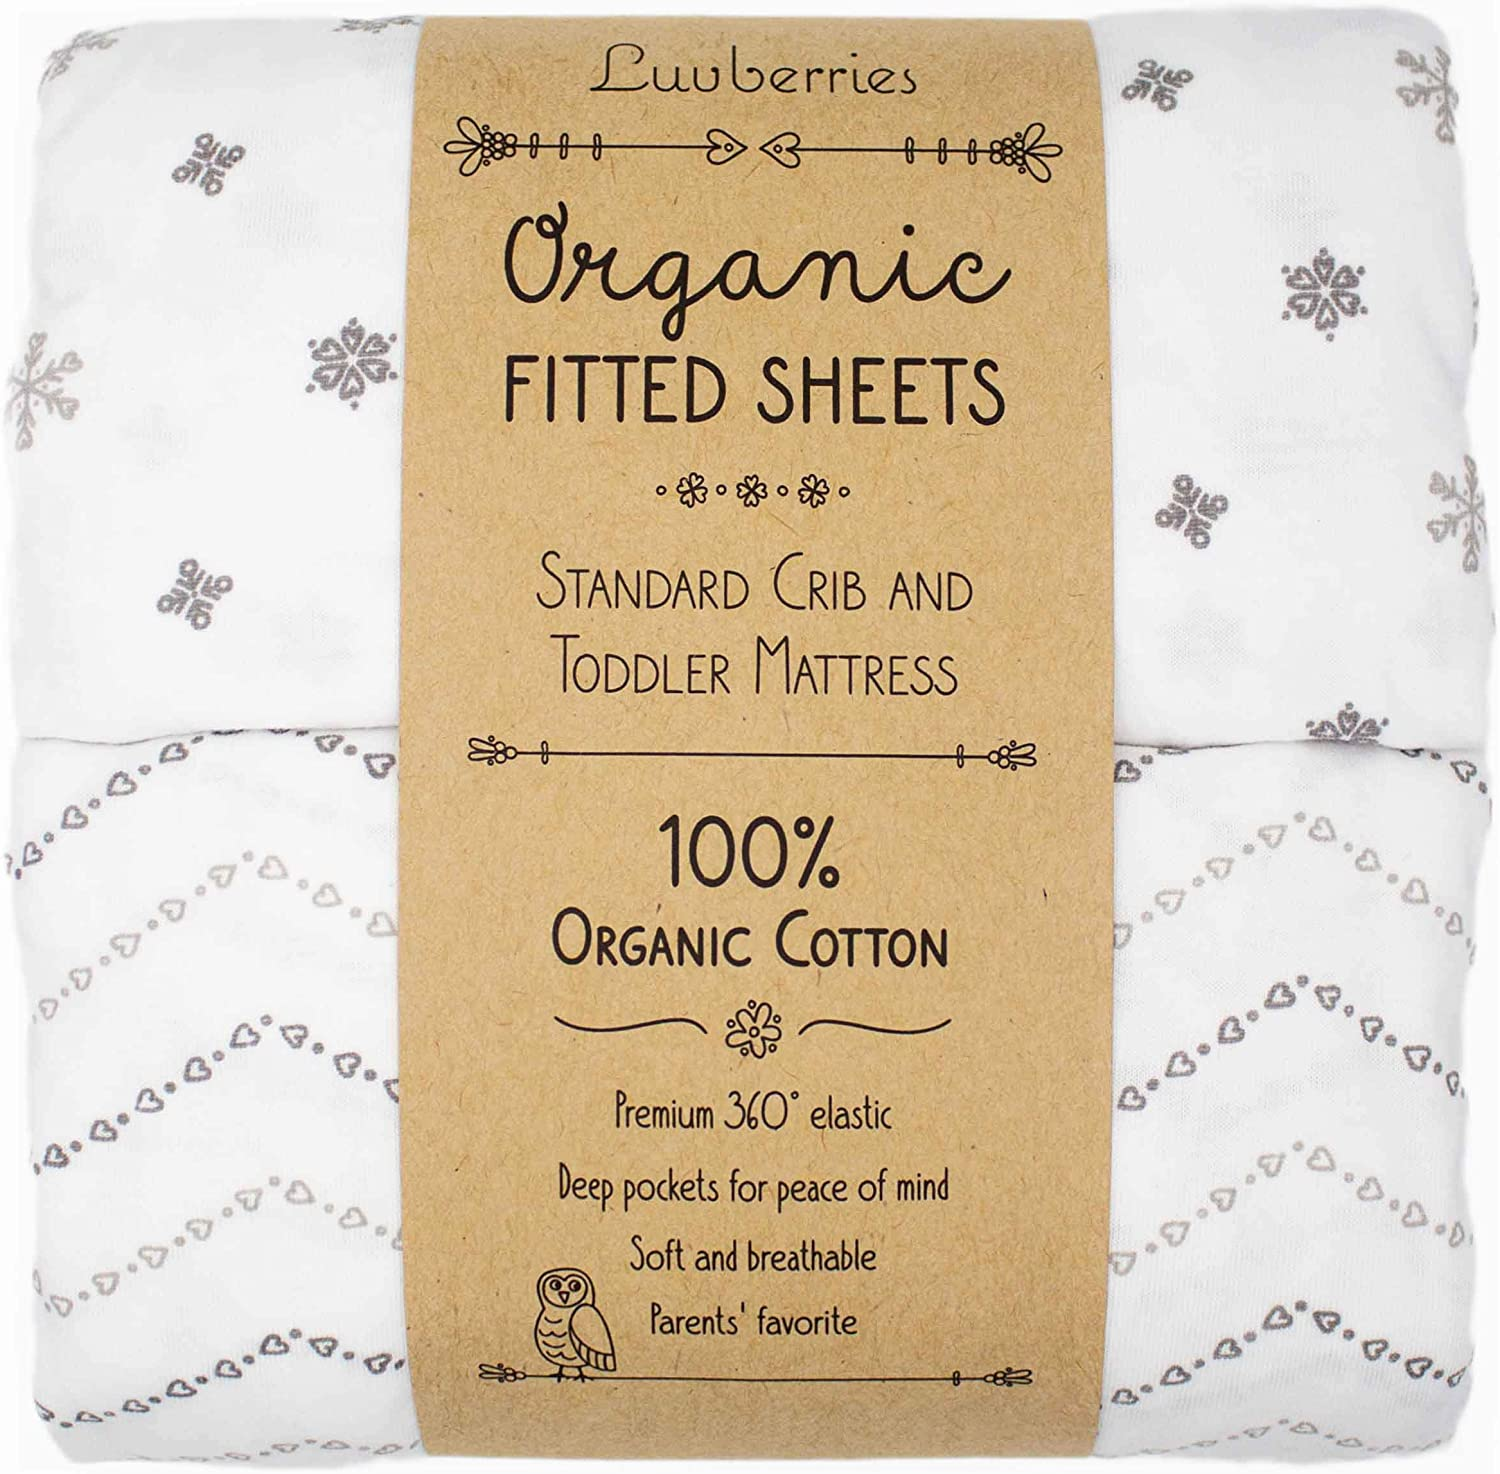 Luvberries - 100% Organic Cotton Fitted Crib Sheets (Set of 2), for Standard Crib and Toddler Mattresses, for Baby and Toddler, Boys & Girls, Unisex